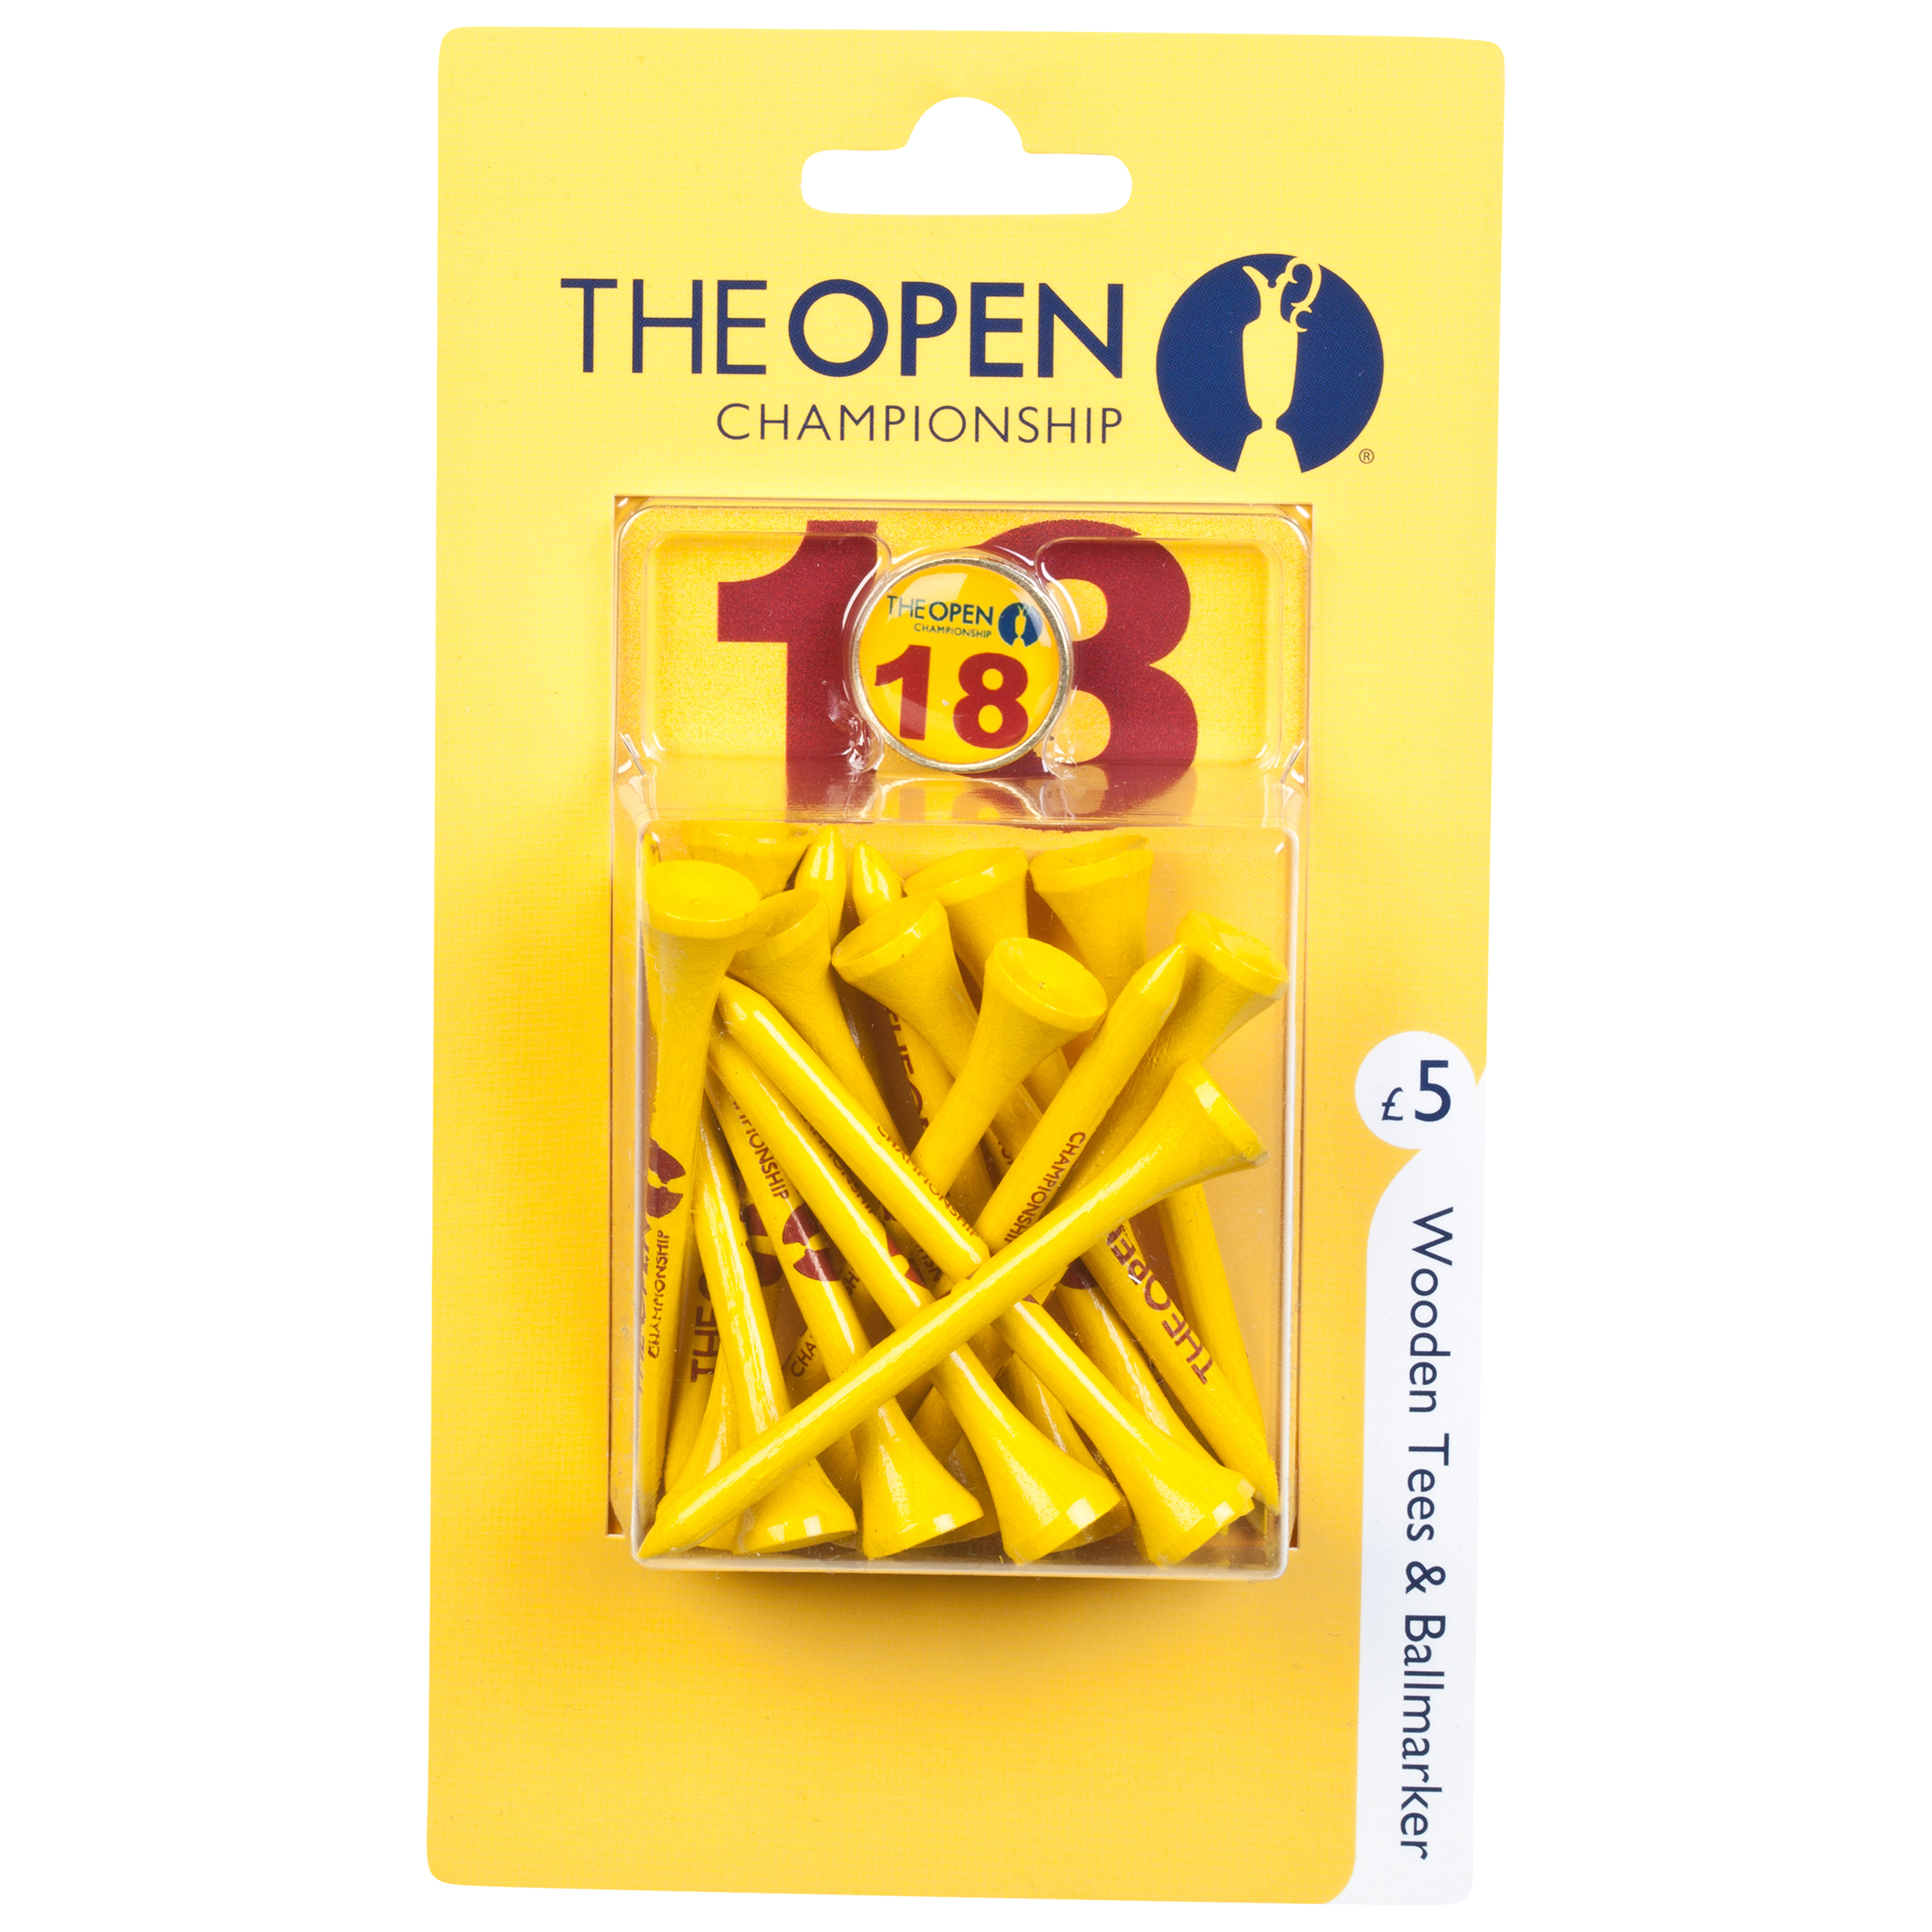 The Open Championship Royal Liverpool 2014 Wooden Tees & Ballmarker